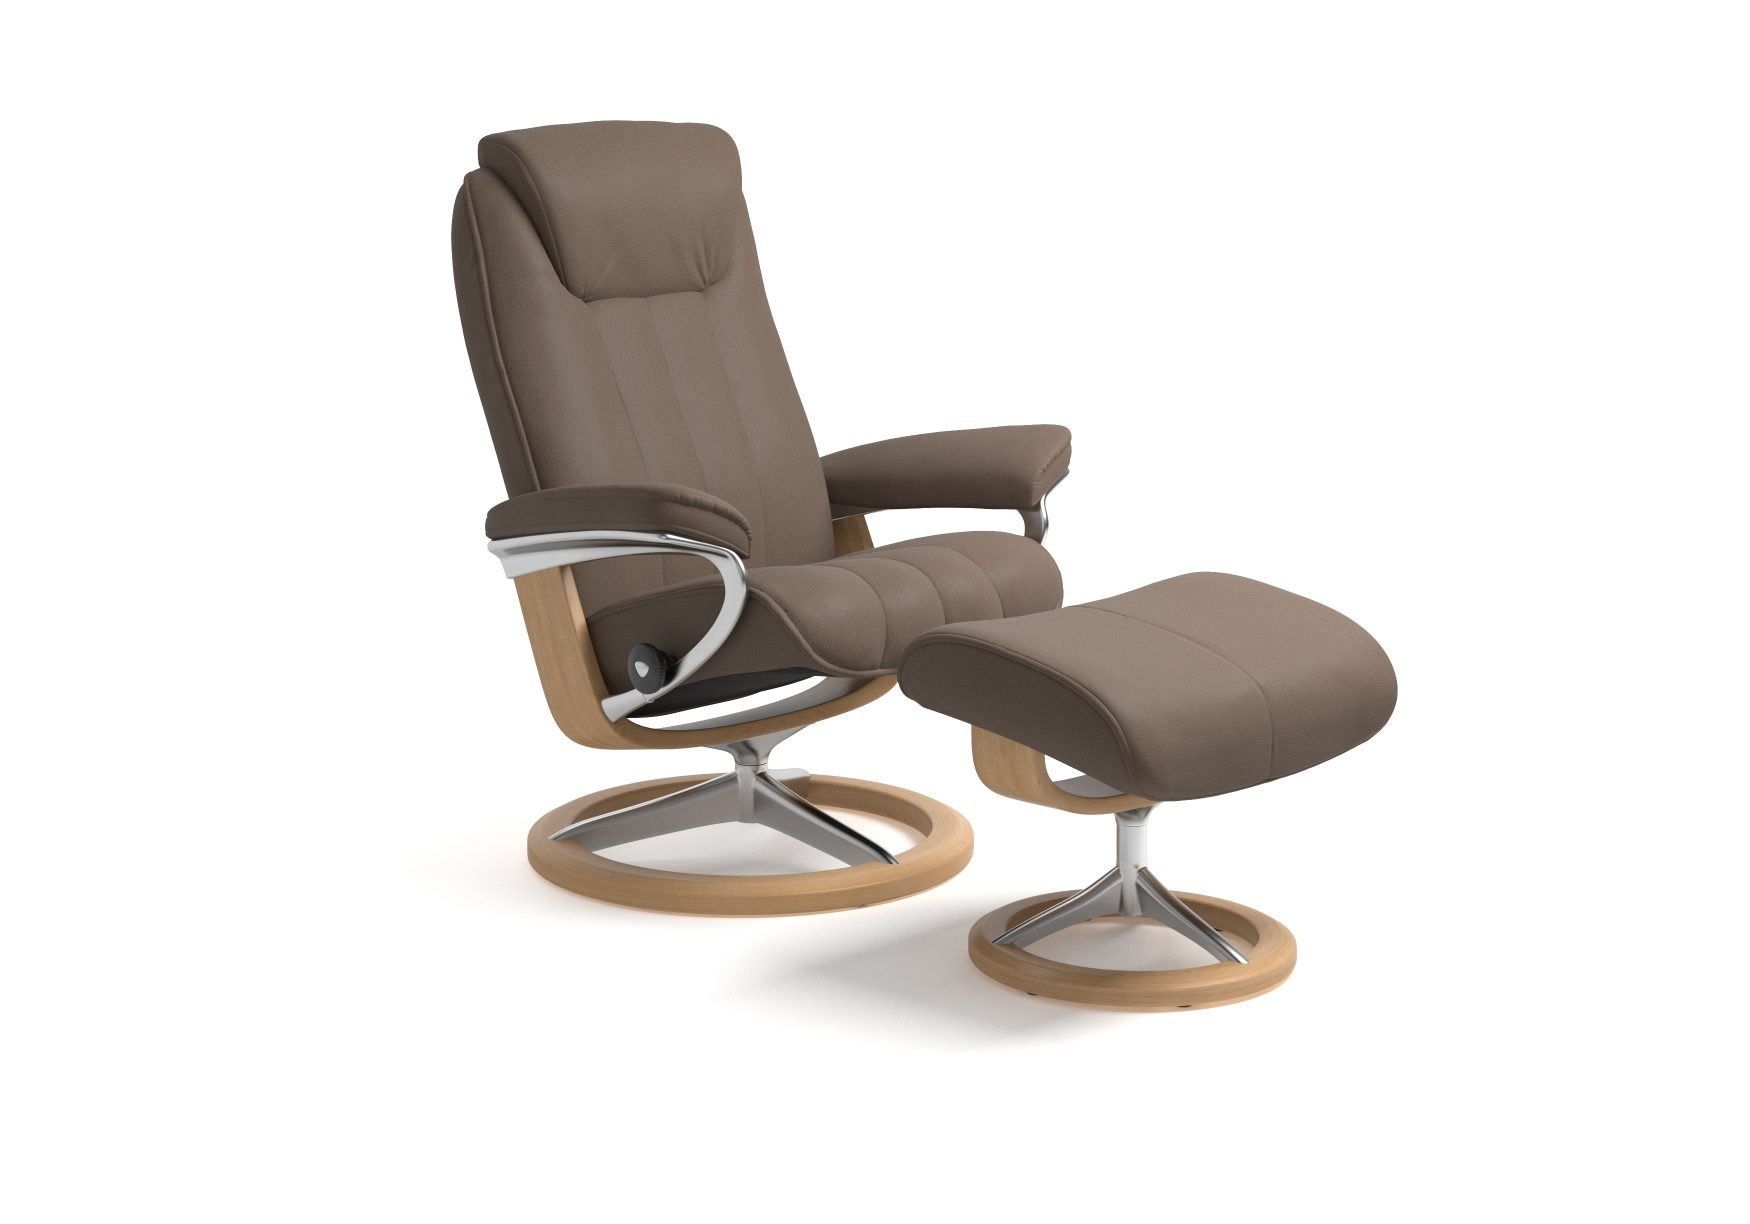 Stressless Sessel Bliss Möbel Busch Stressless Sale Stressless Stressless Sessel Bliss